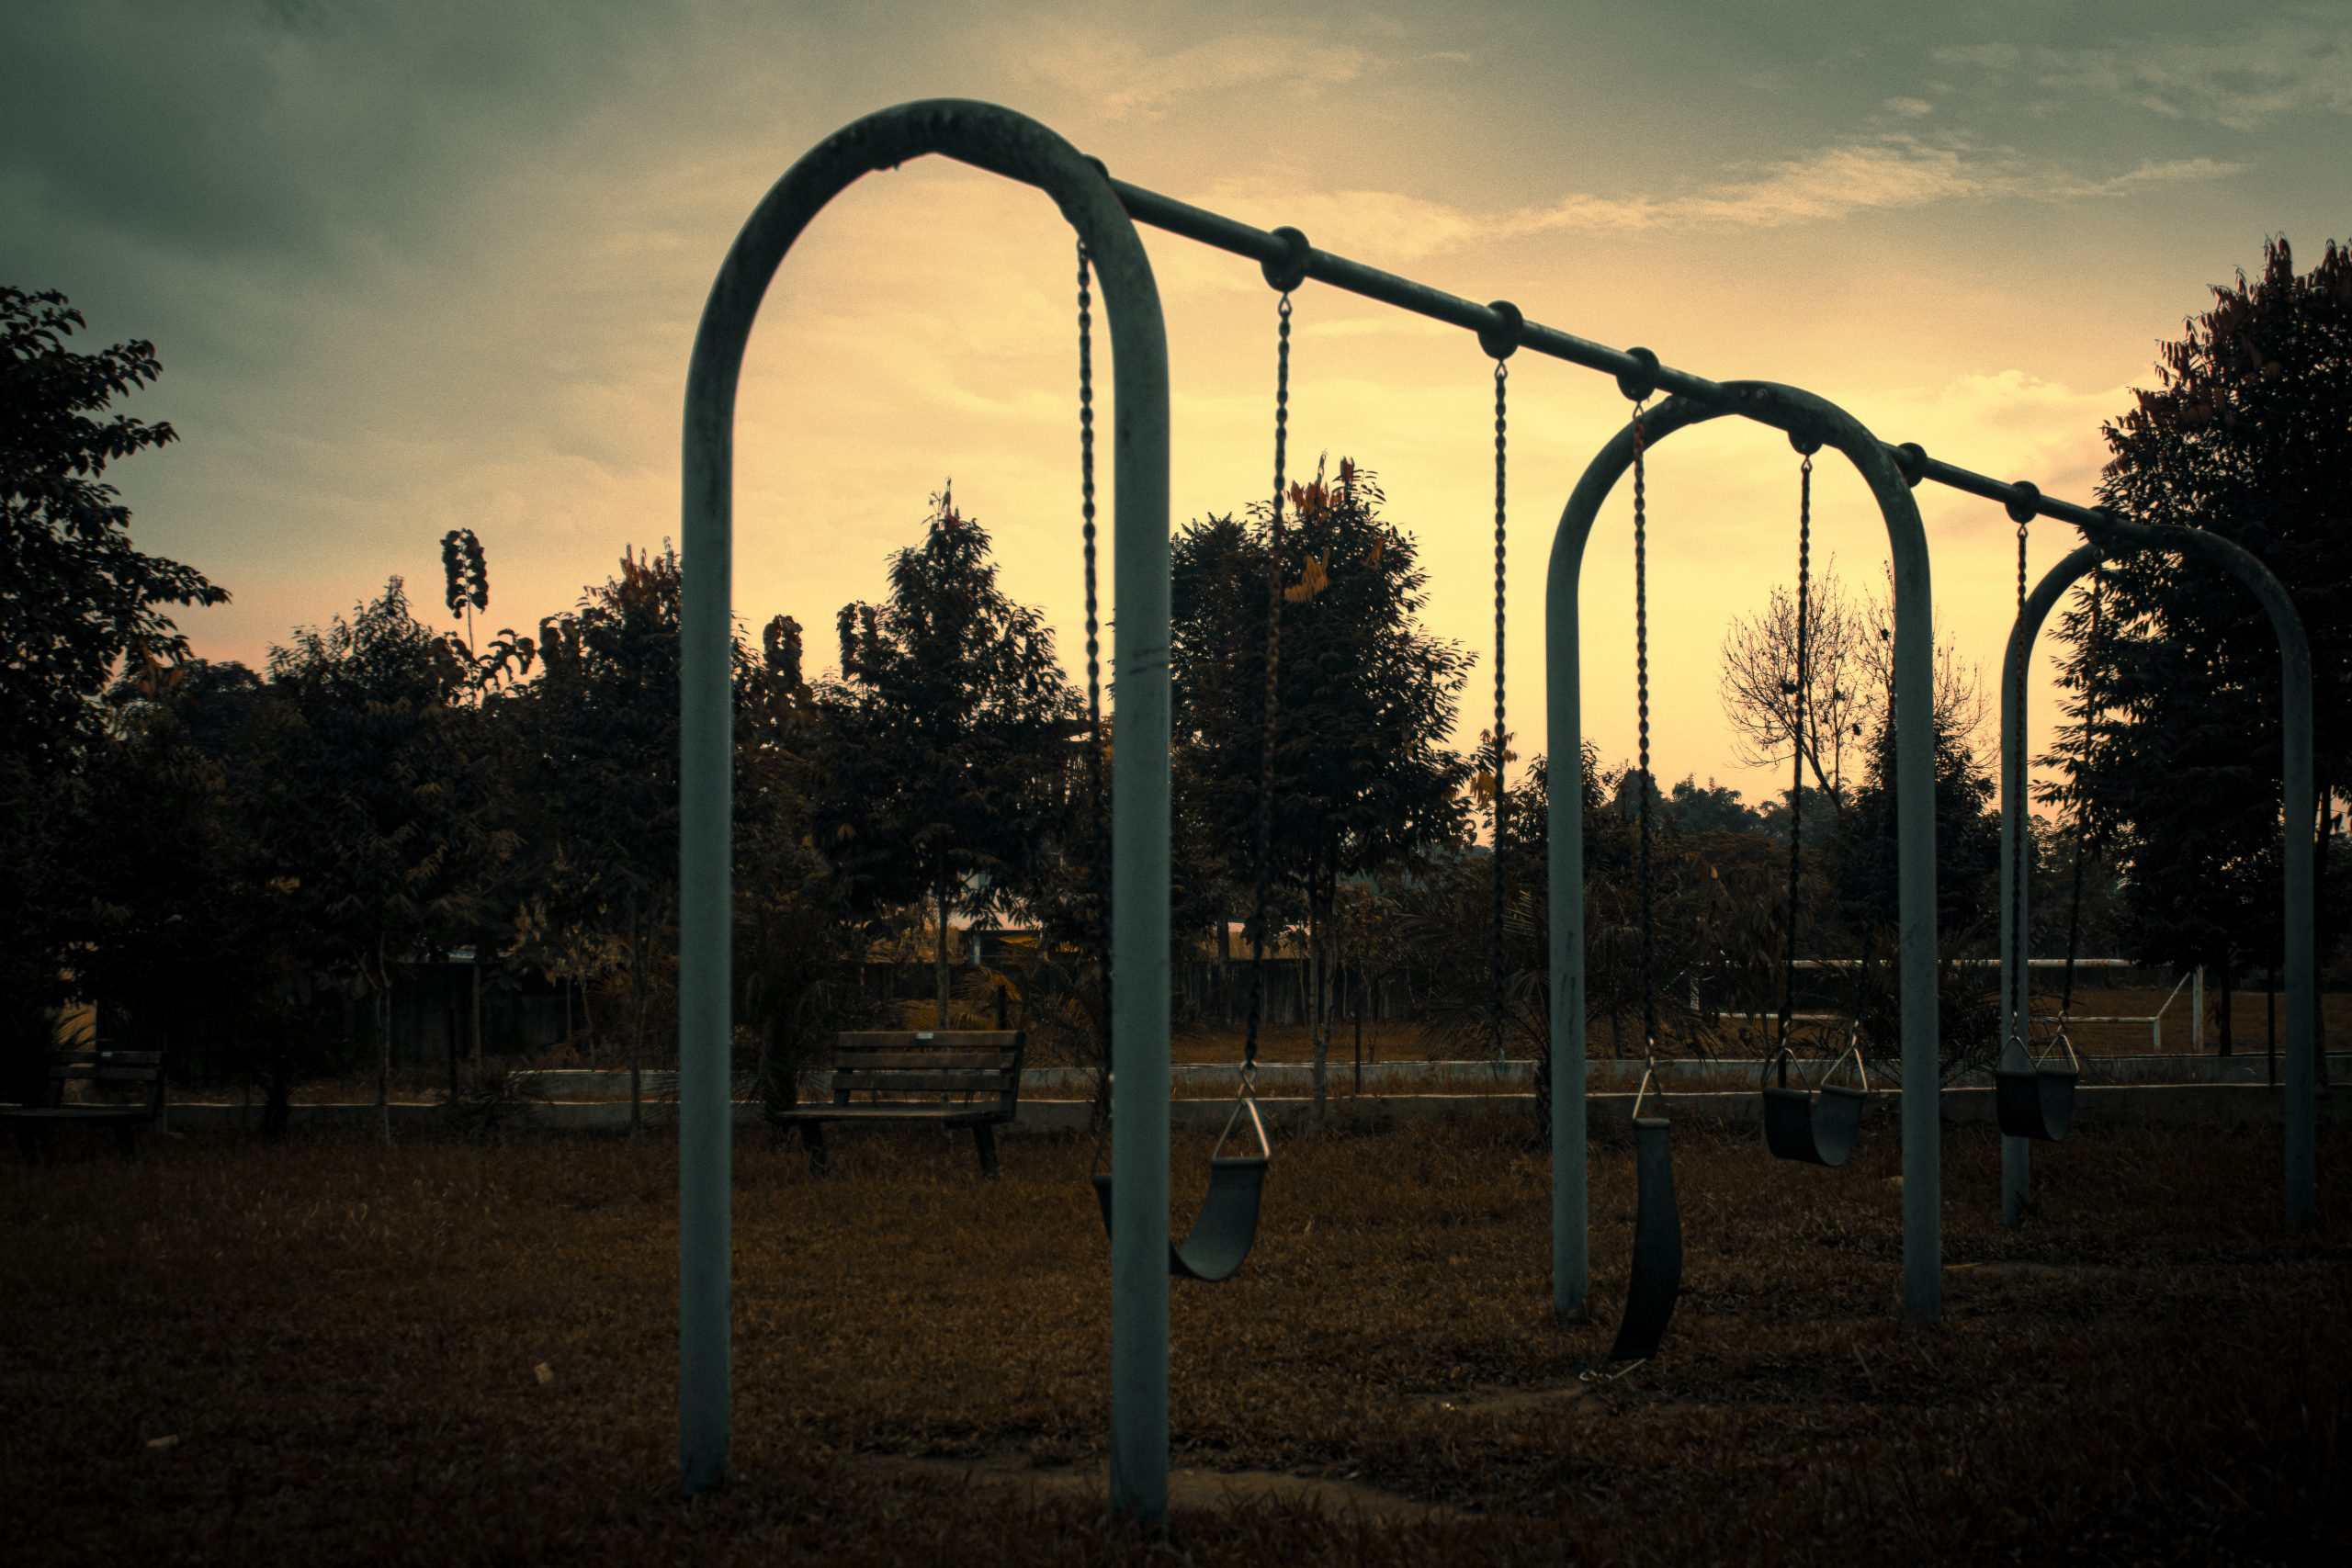 Chain swing in a park